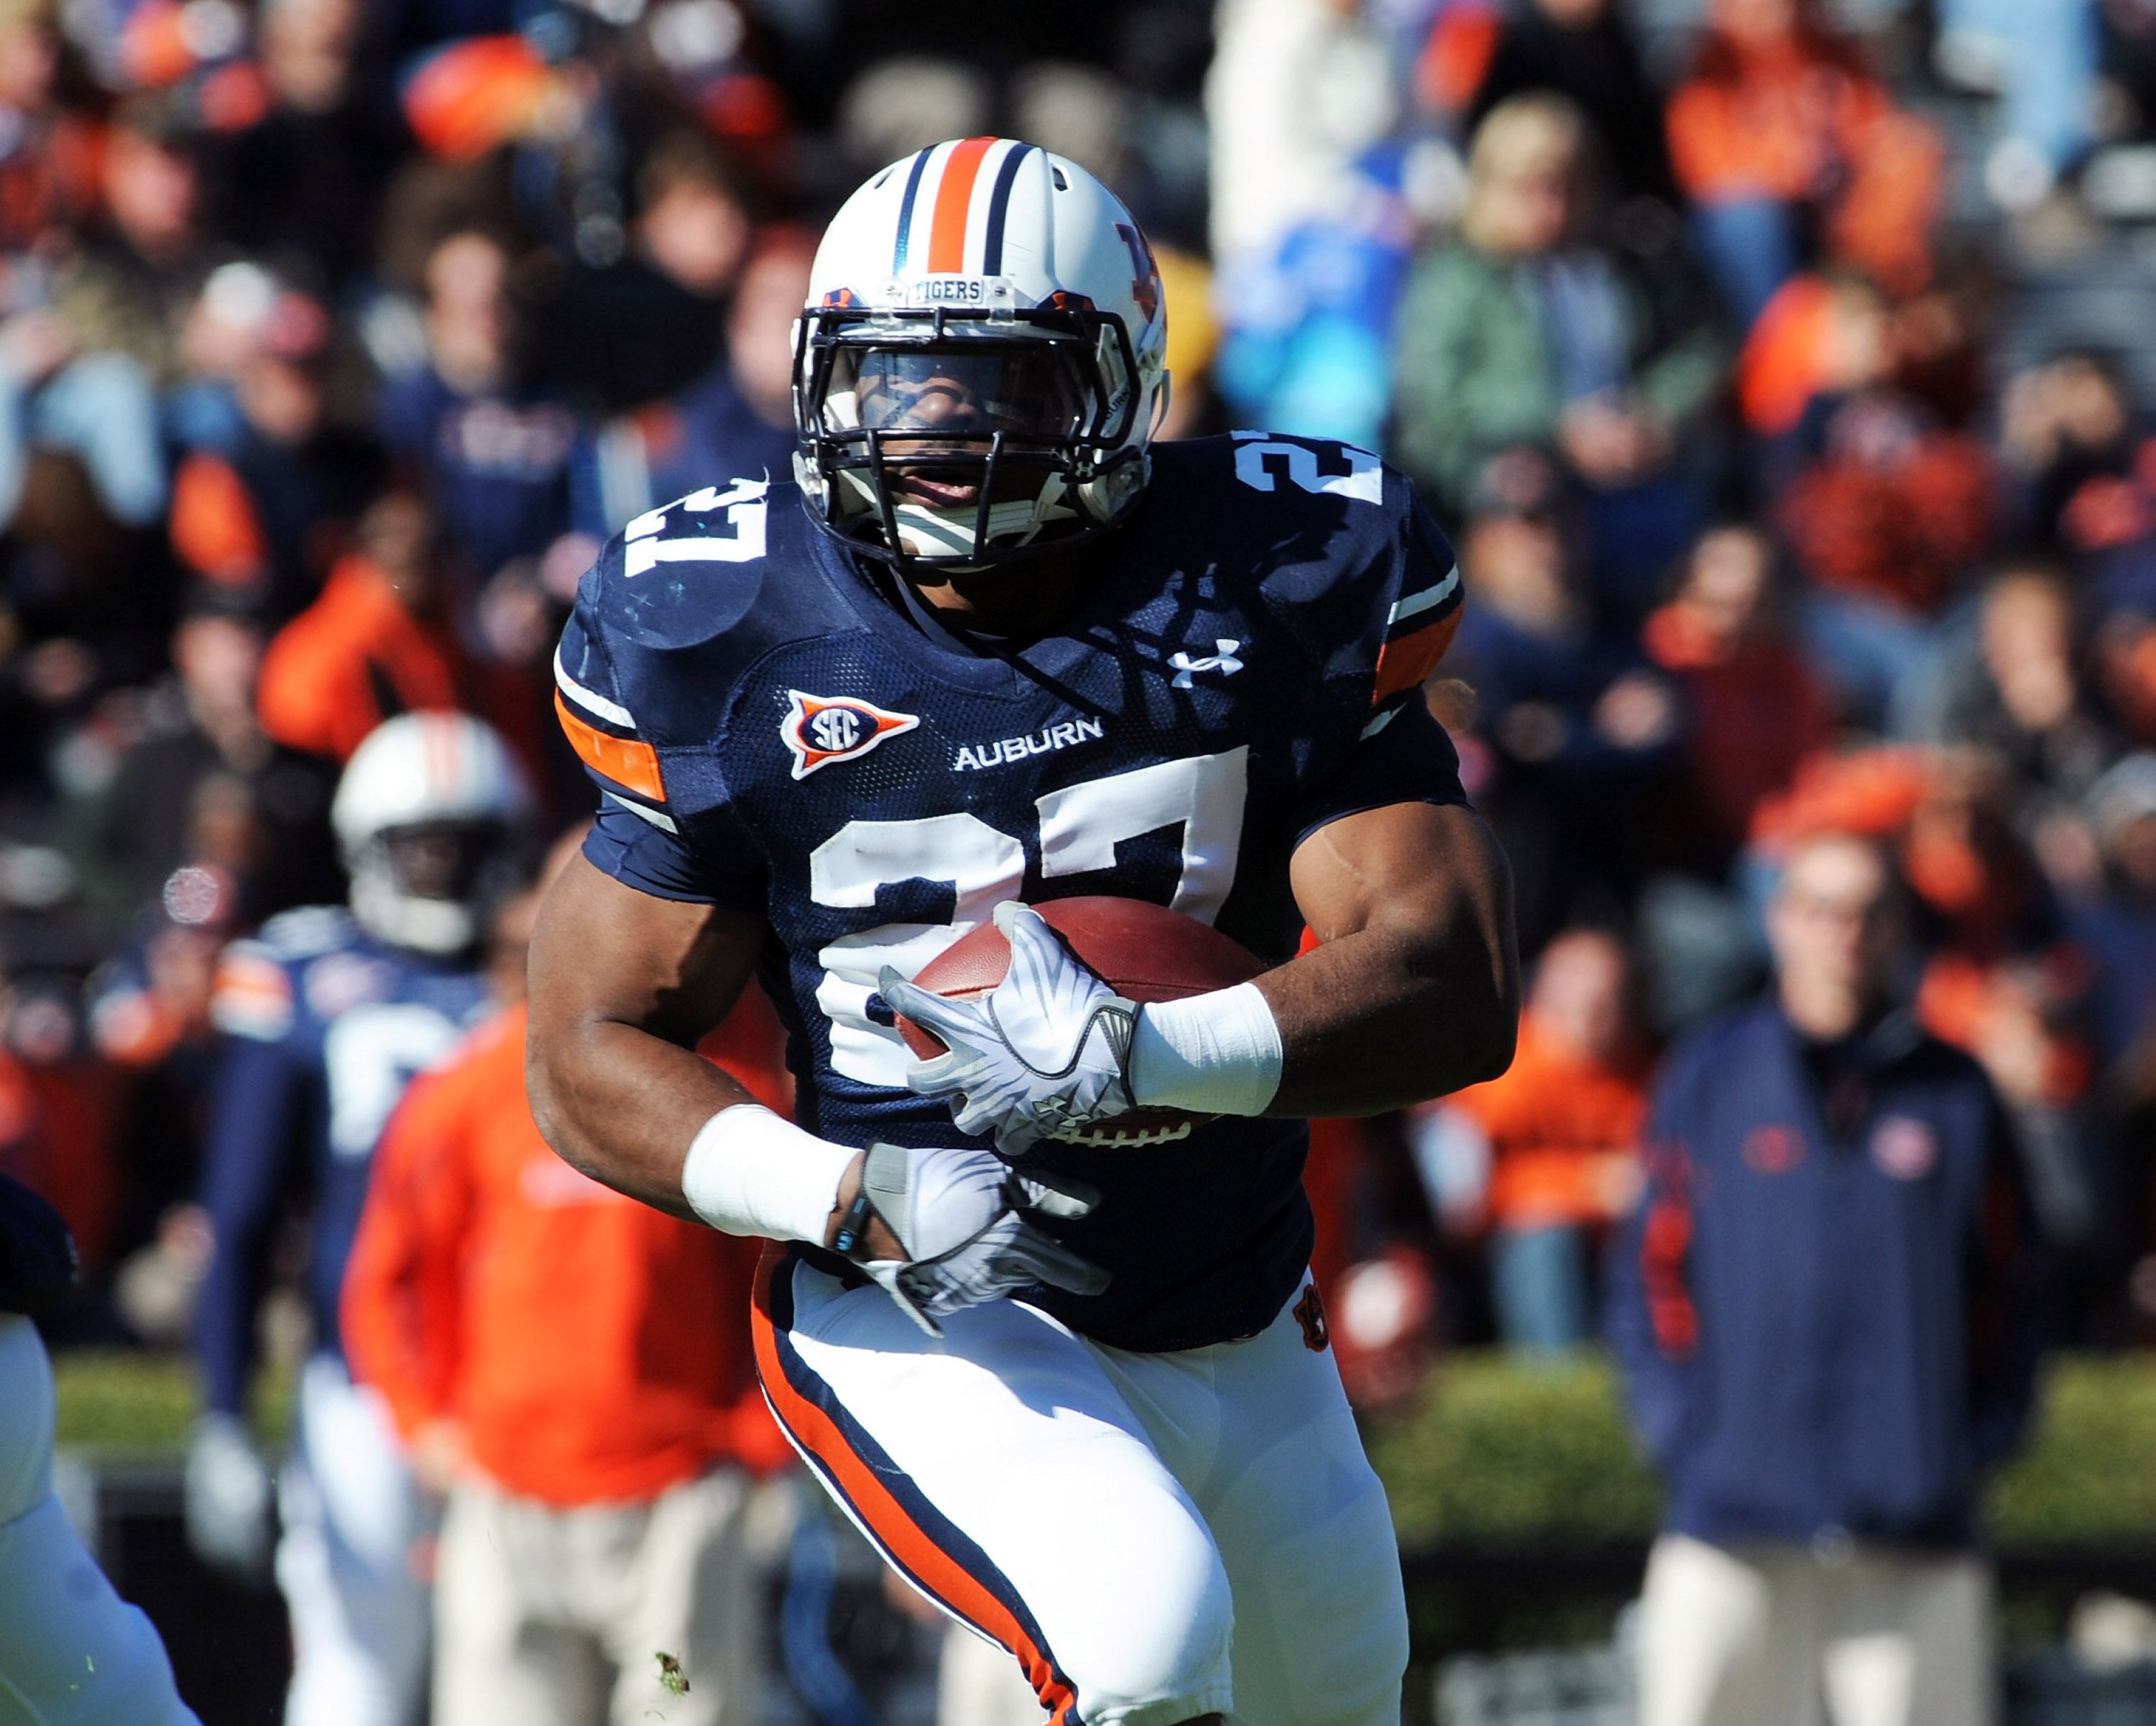 AUBURN, AL - NOVEMBER 6:  Running back Mario Fannin #27 of the Auburn Tigers rushes upfield against the Chattanooga Mocs November 6, 2010 at Jordan-Hare Stadium in Auburn, Alabama.  (Photo by Al Messerschmidt/Getty Images)